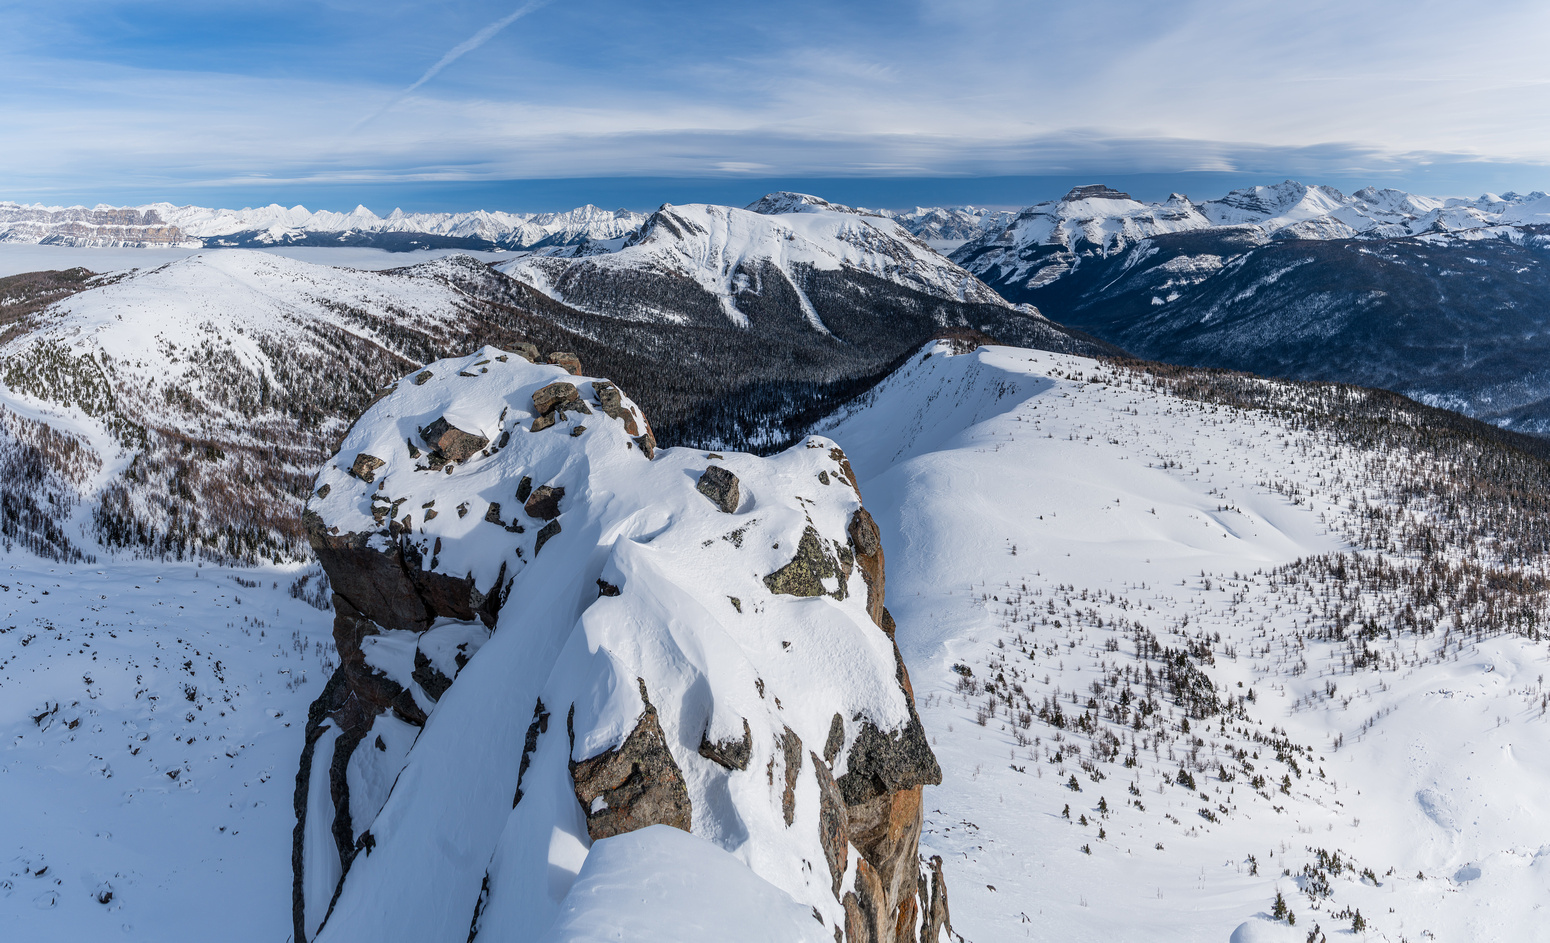 An exposed outcrop off the summit with Copper Mountain beyond.